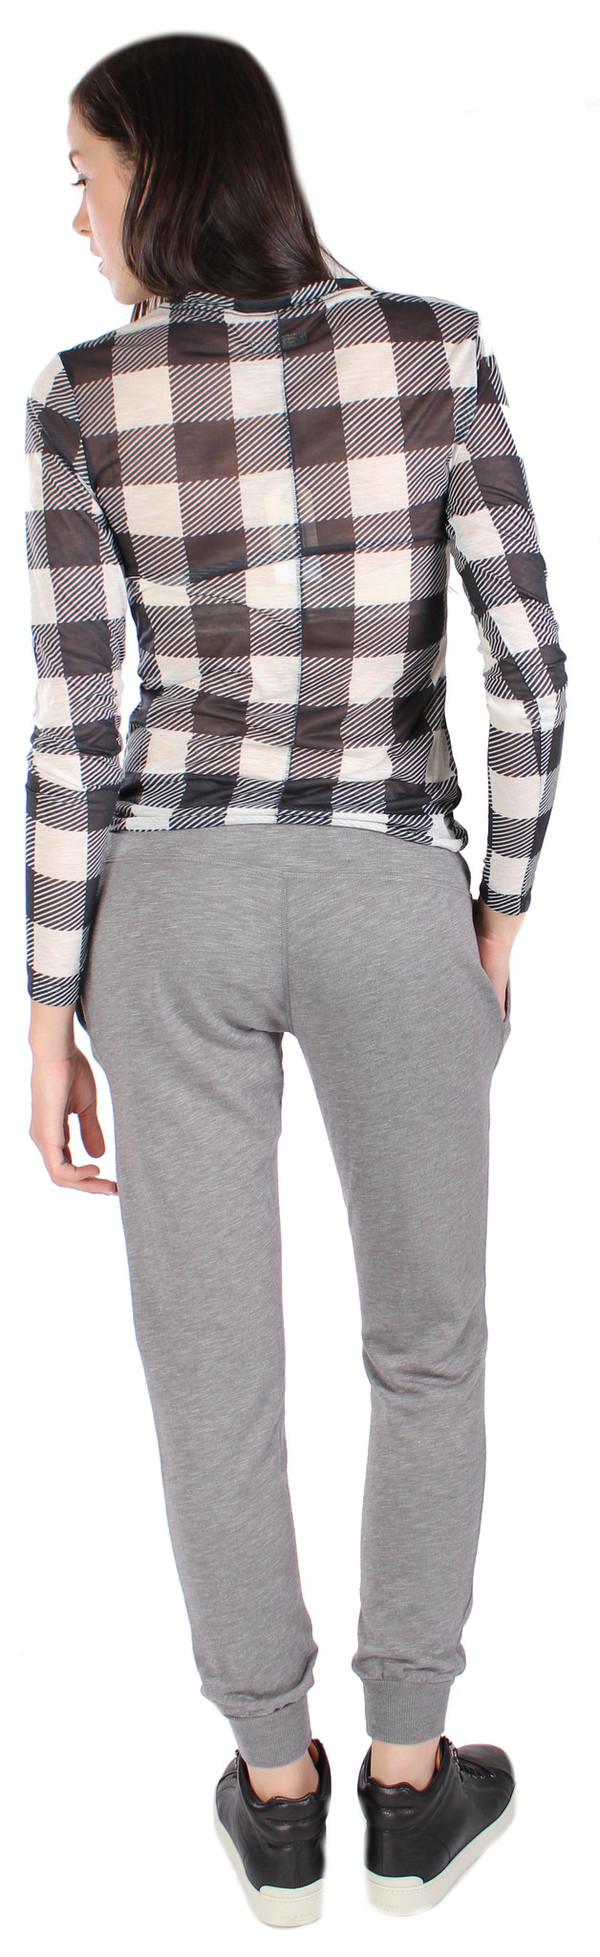 Clu Sweat Pants with Yoke